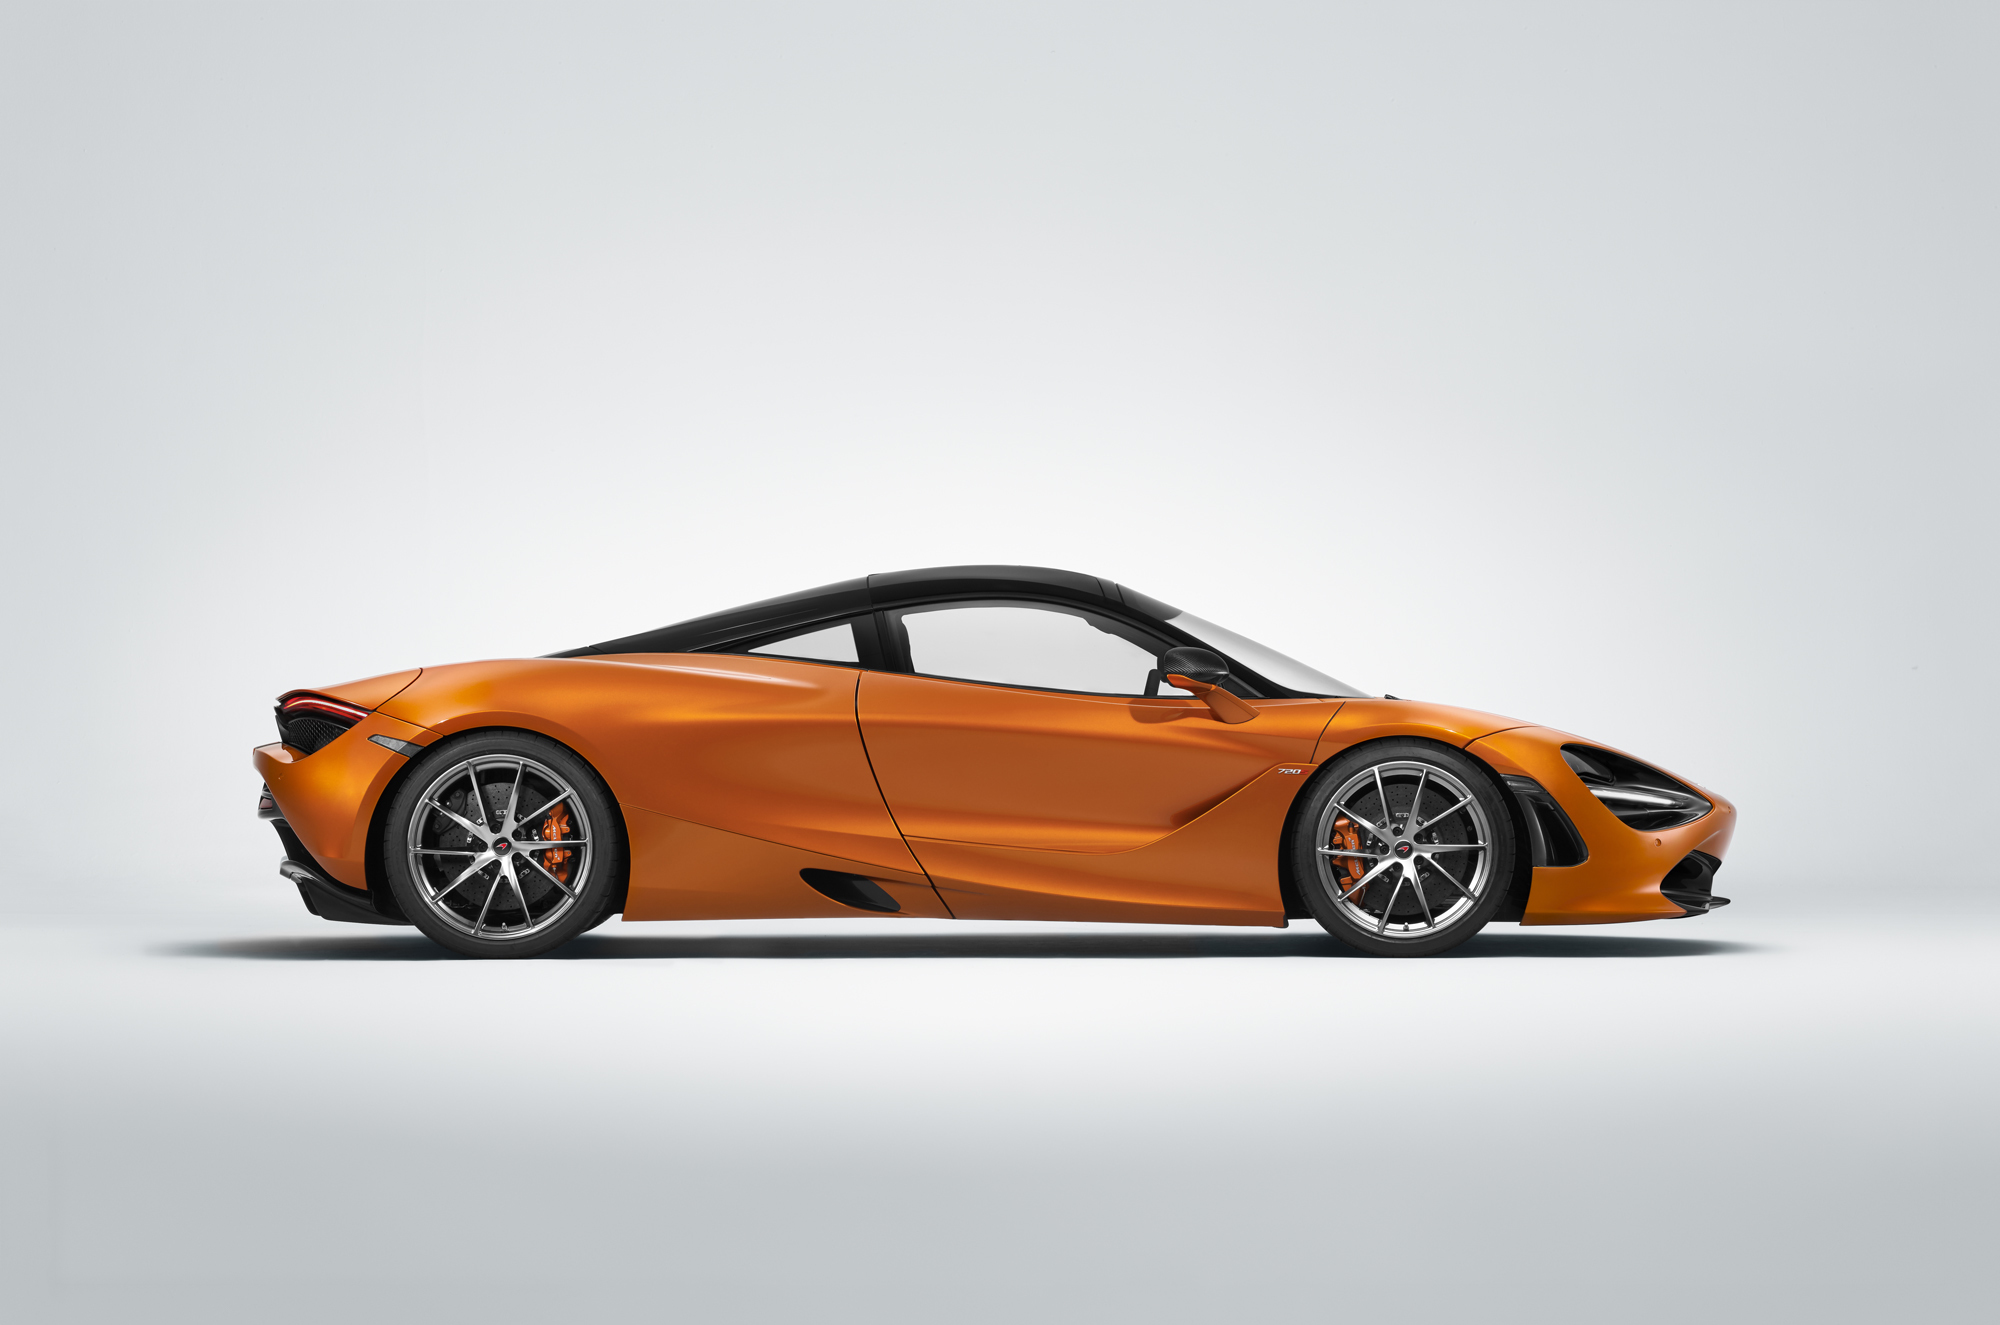 Mclaren 720s Wallpapers Images Photos Pictures Backgrounds